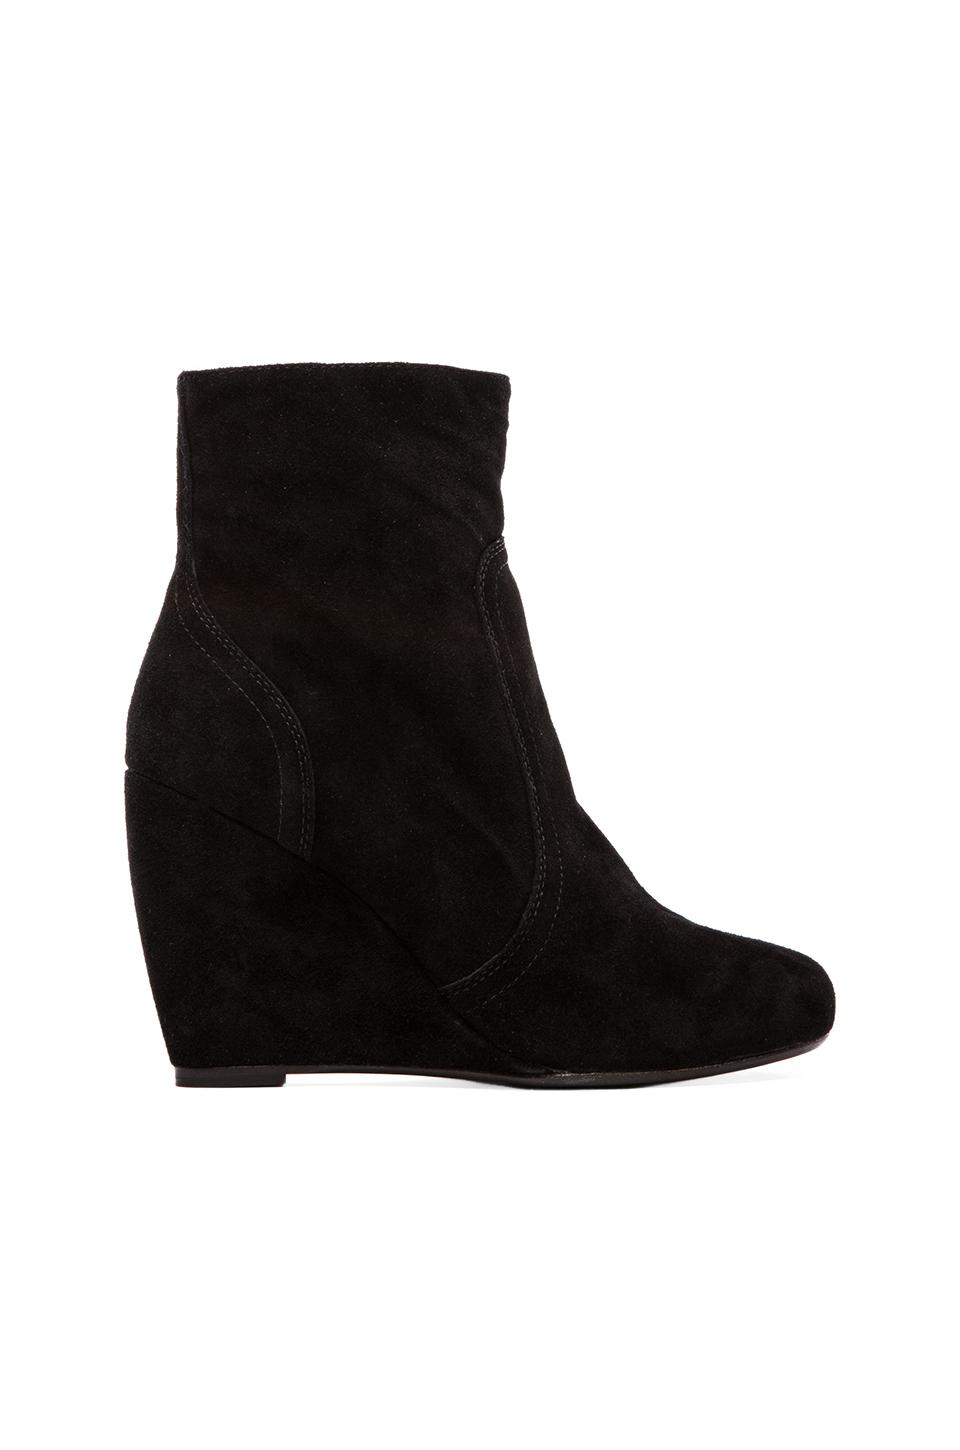 Joie Oakley Wedge Bootie in Black